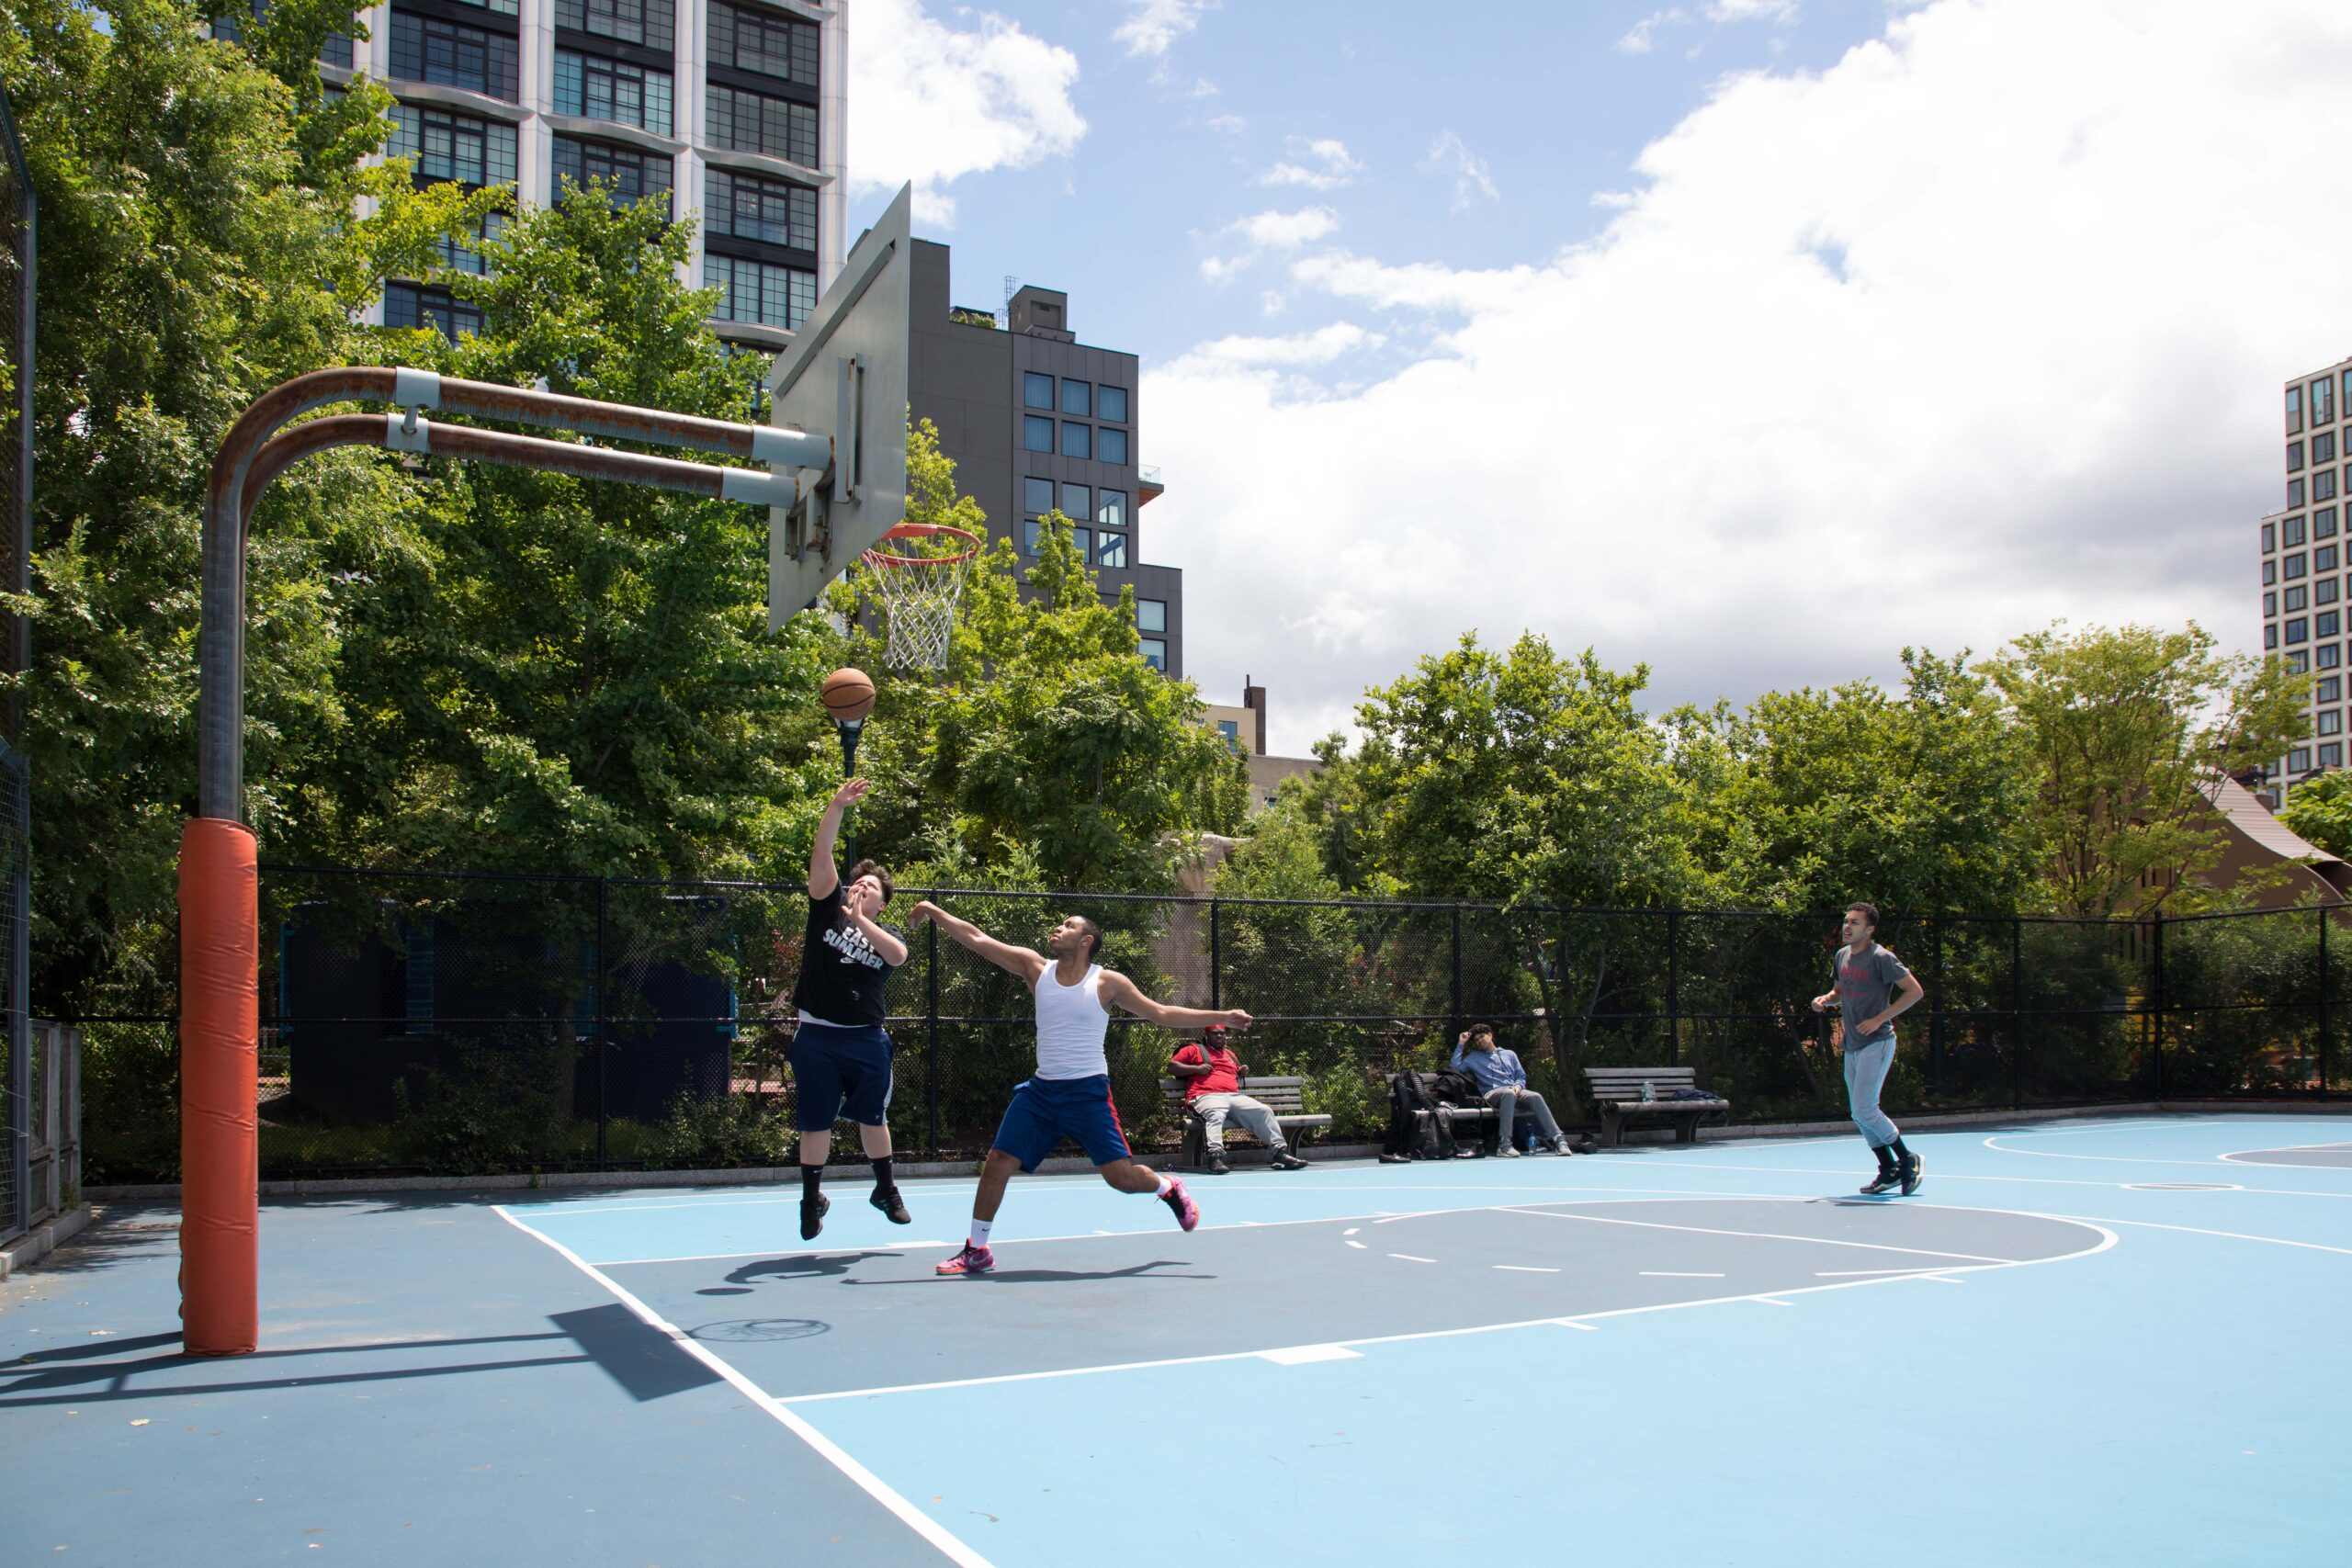 Basketball players shooting a basket during a game in Chelsea Waterside Park